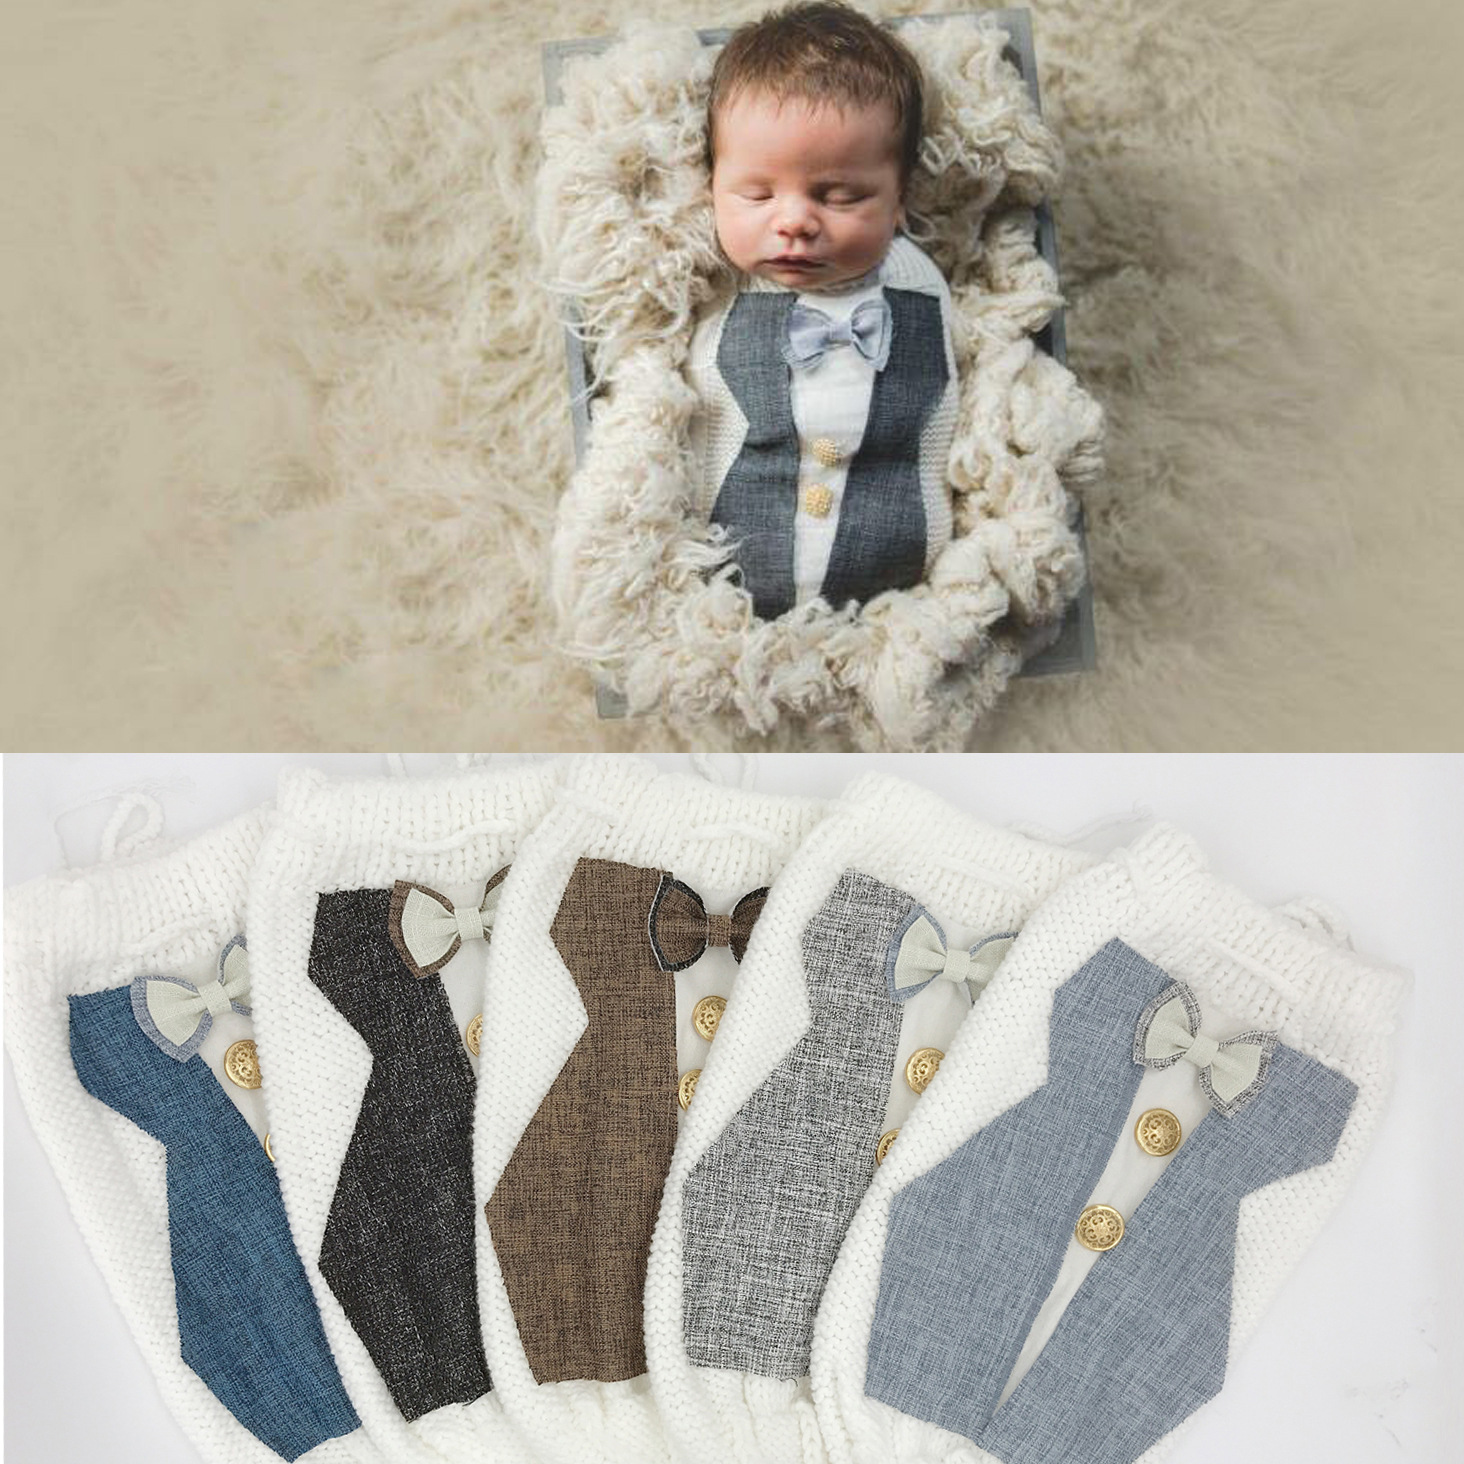 Newborn Photography PropsAccessories Baby Photography Clothes Creative Knitted Crochet Bags Baby Photo Prop Infant Sleeping Bag